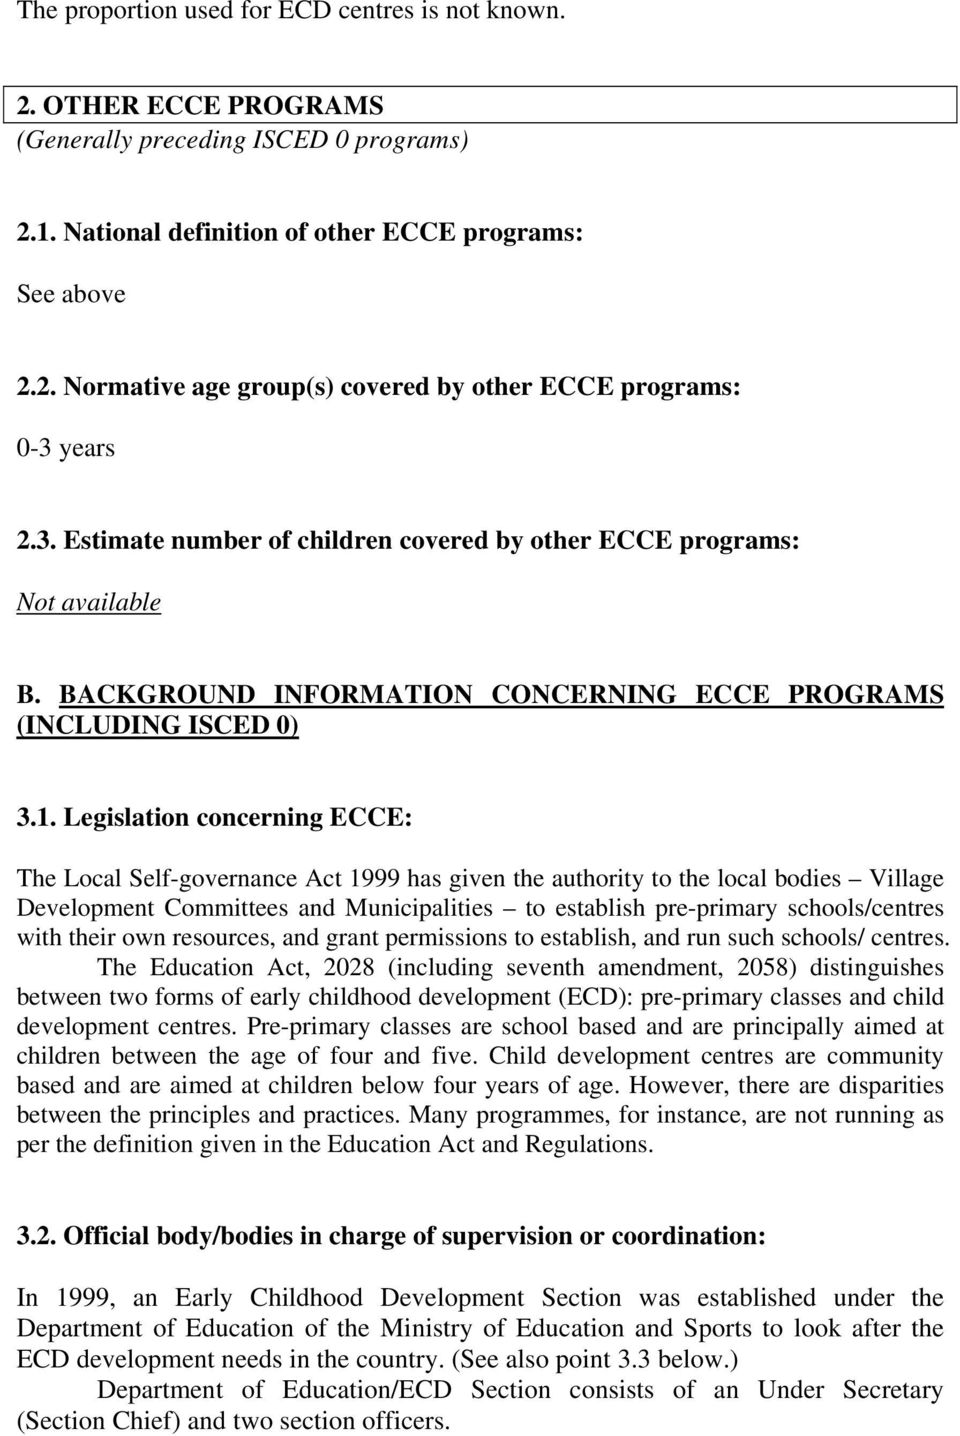 Legislation concerning ECCE: The Local Self-governance Act 1999 has given the authority to the local bodies Village Development Committees and Municipalities to establish pre-primary schools/centres